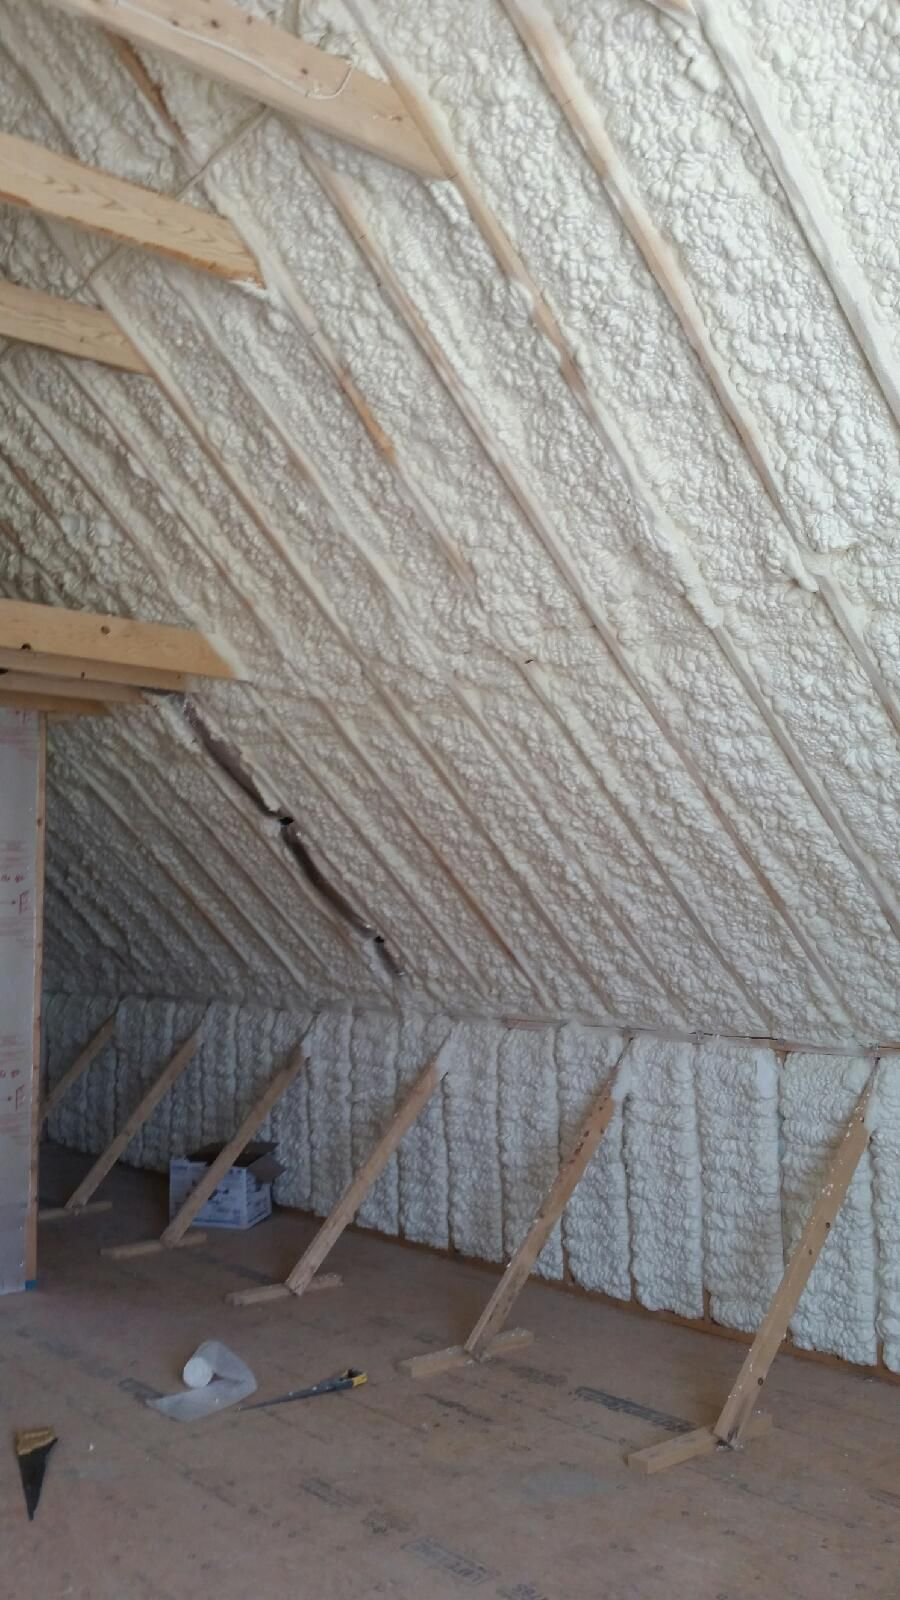 Open Cell Spray Foam Insulation Installed On The Roof Deck And Knee Walls At A New Townhouse Spray Foam Attic Insulation Spray Foam Insulation Foam Insulation